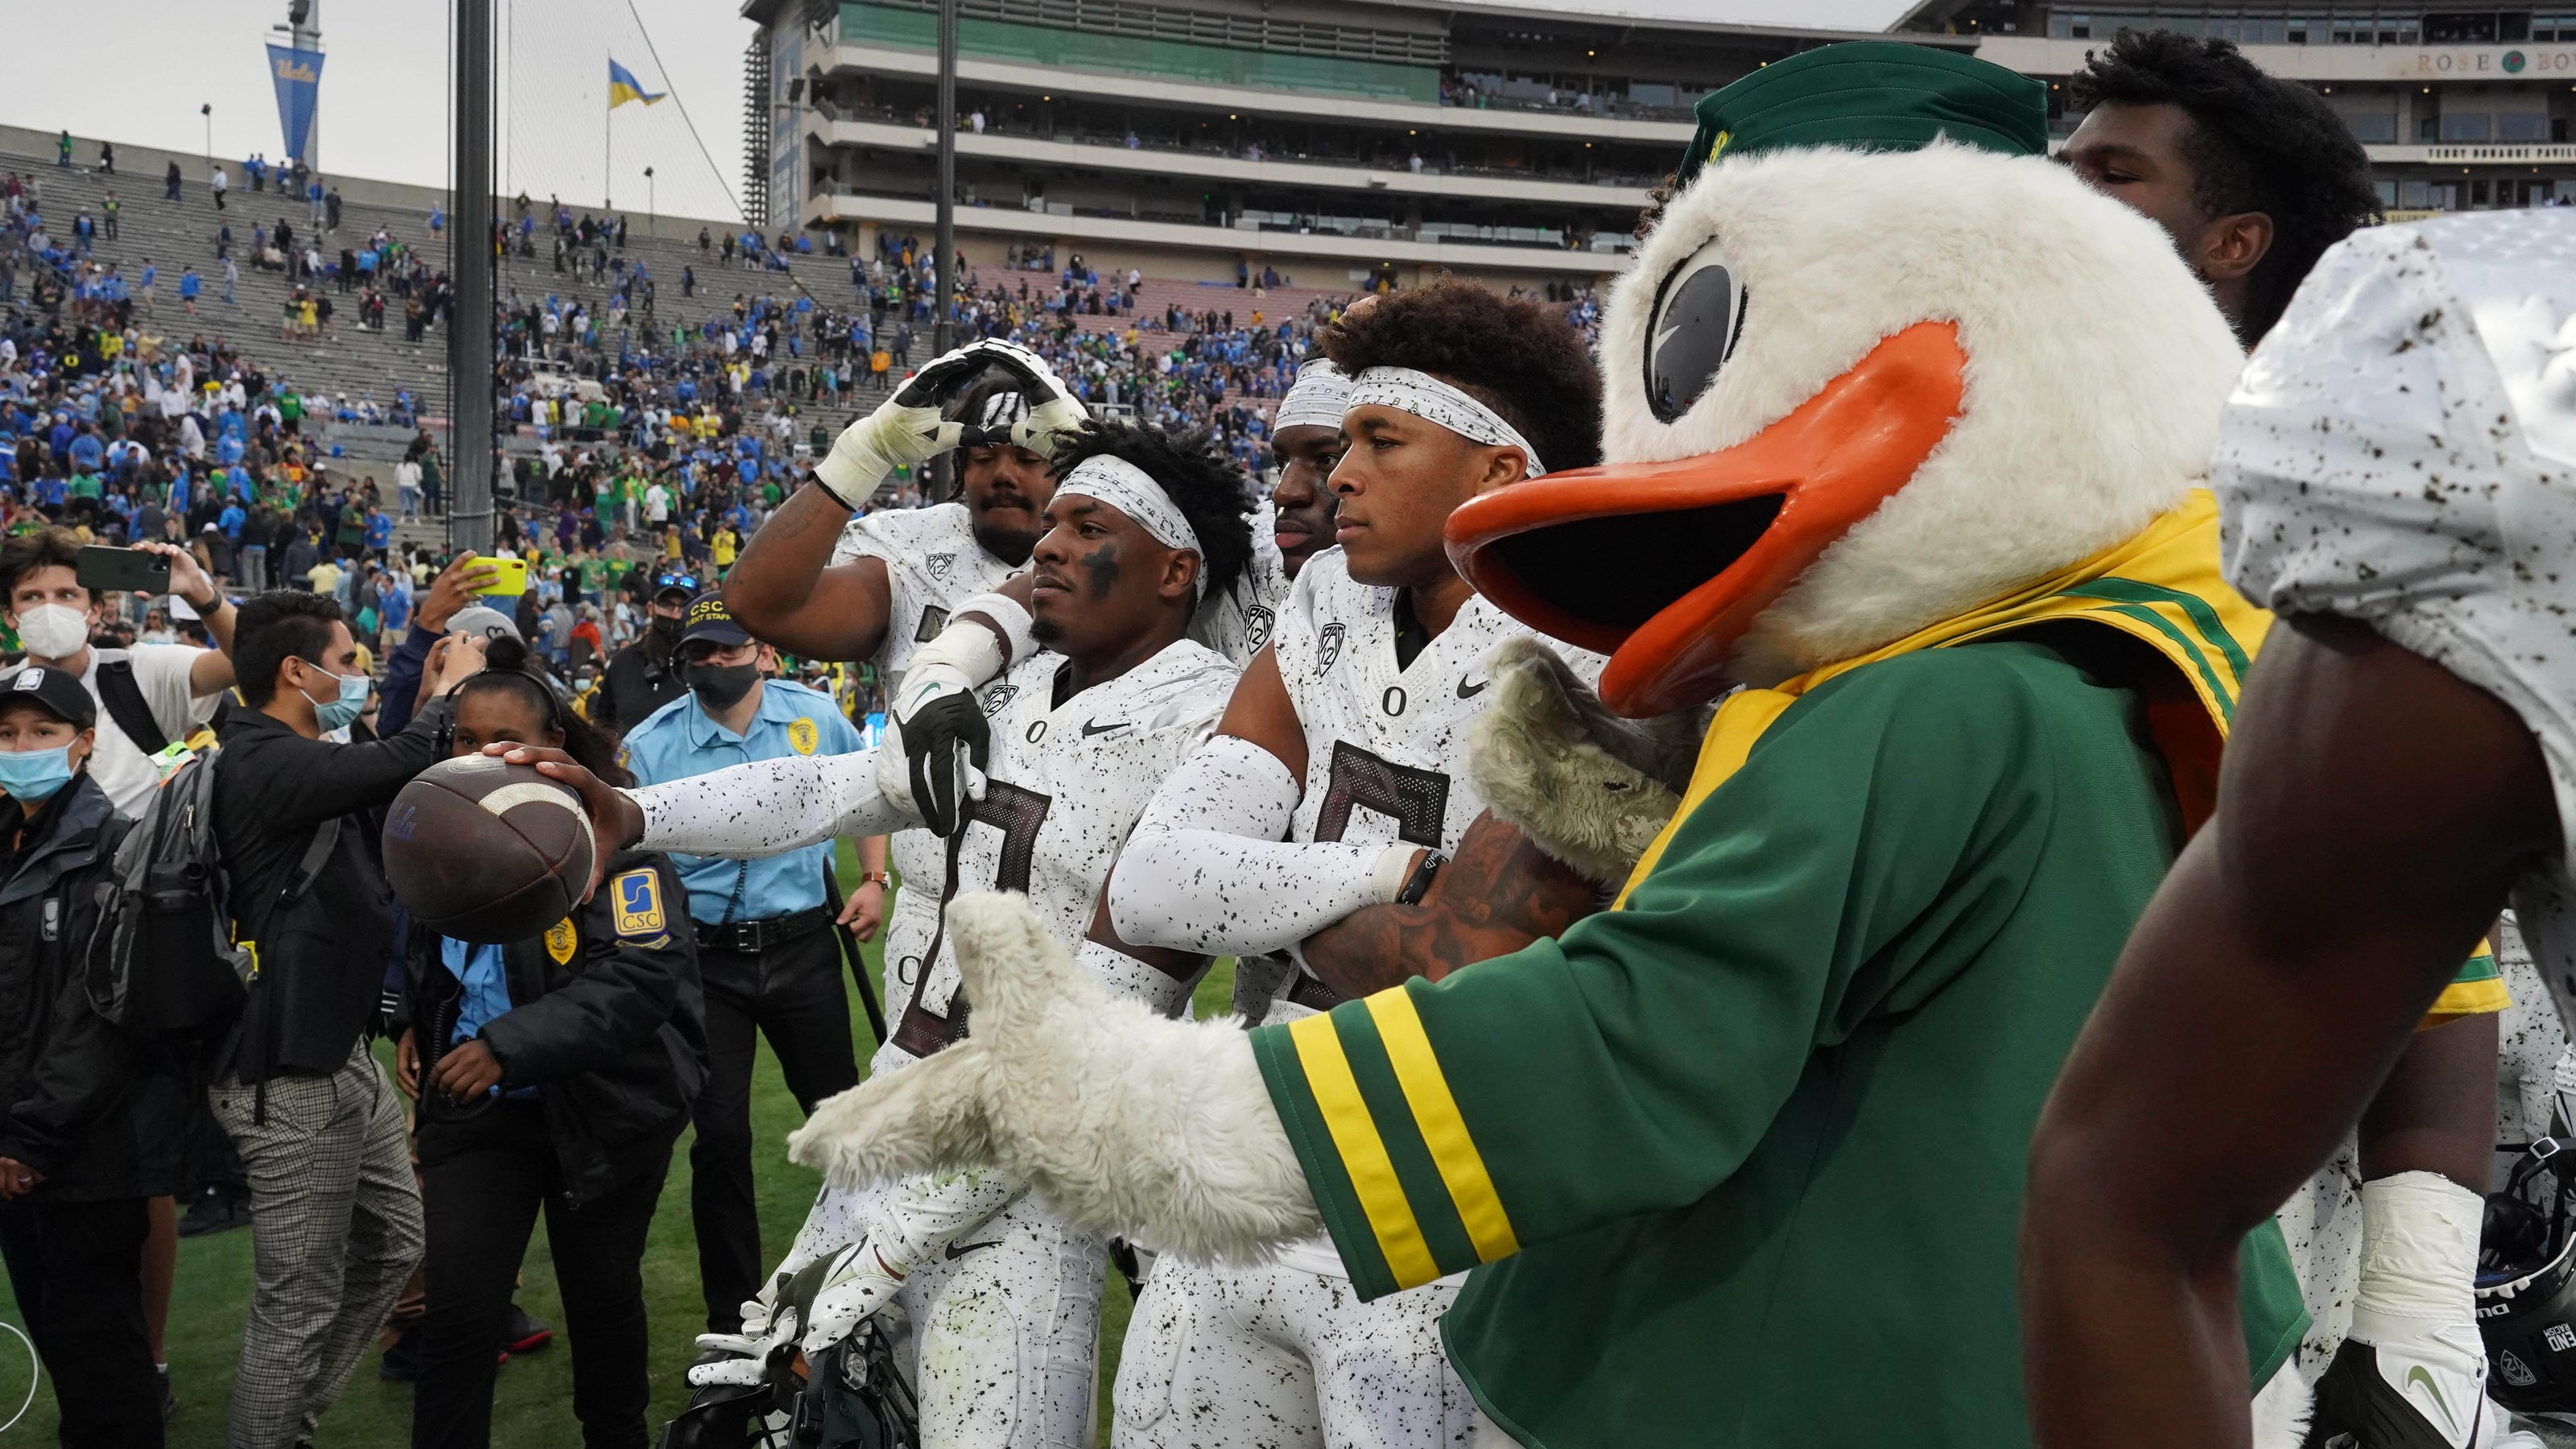 Winners and losers of college football's Week 8: Oregon escapes, Penn State falls out of playoff race